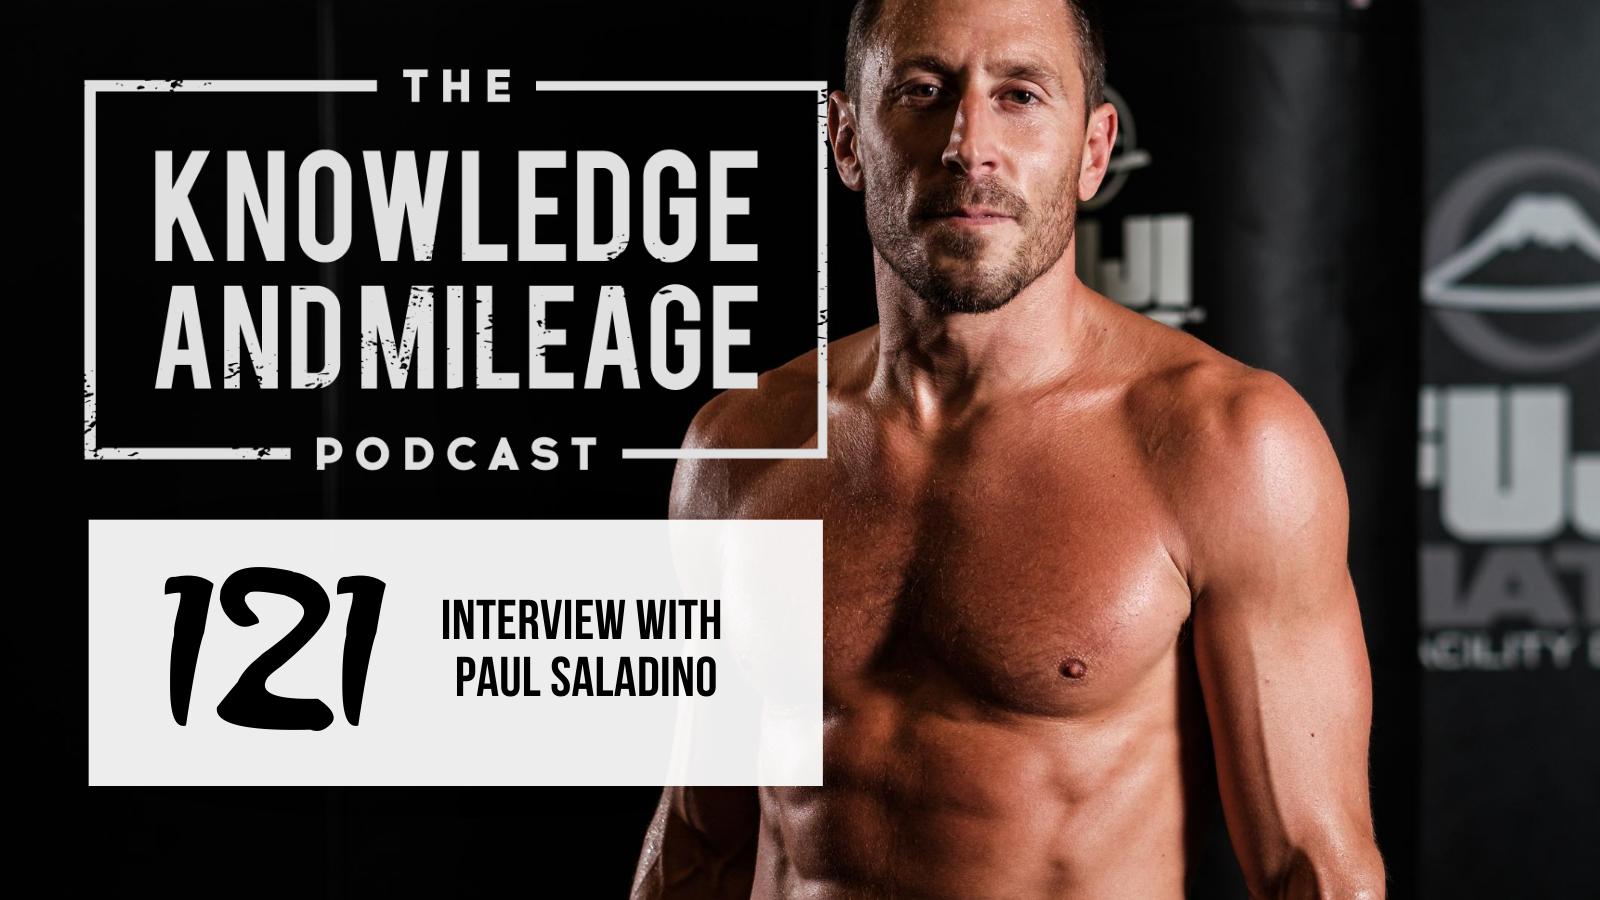 EP 121: Carnivore Diet - Eating Nose to Tail with Paul Saladino